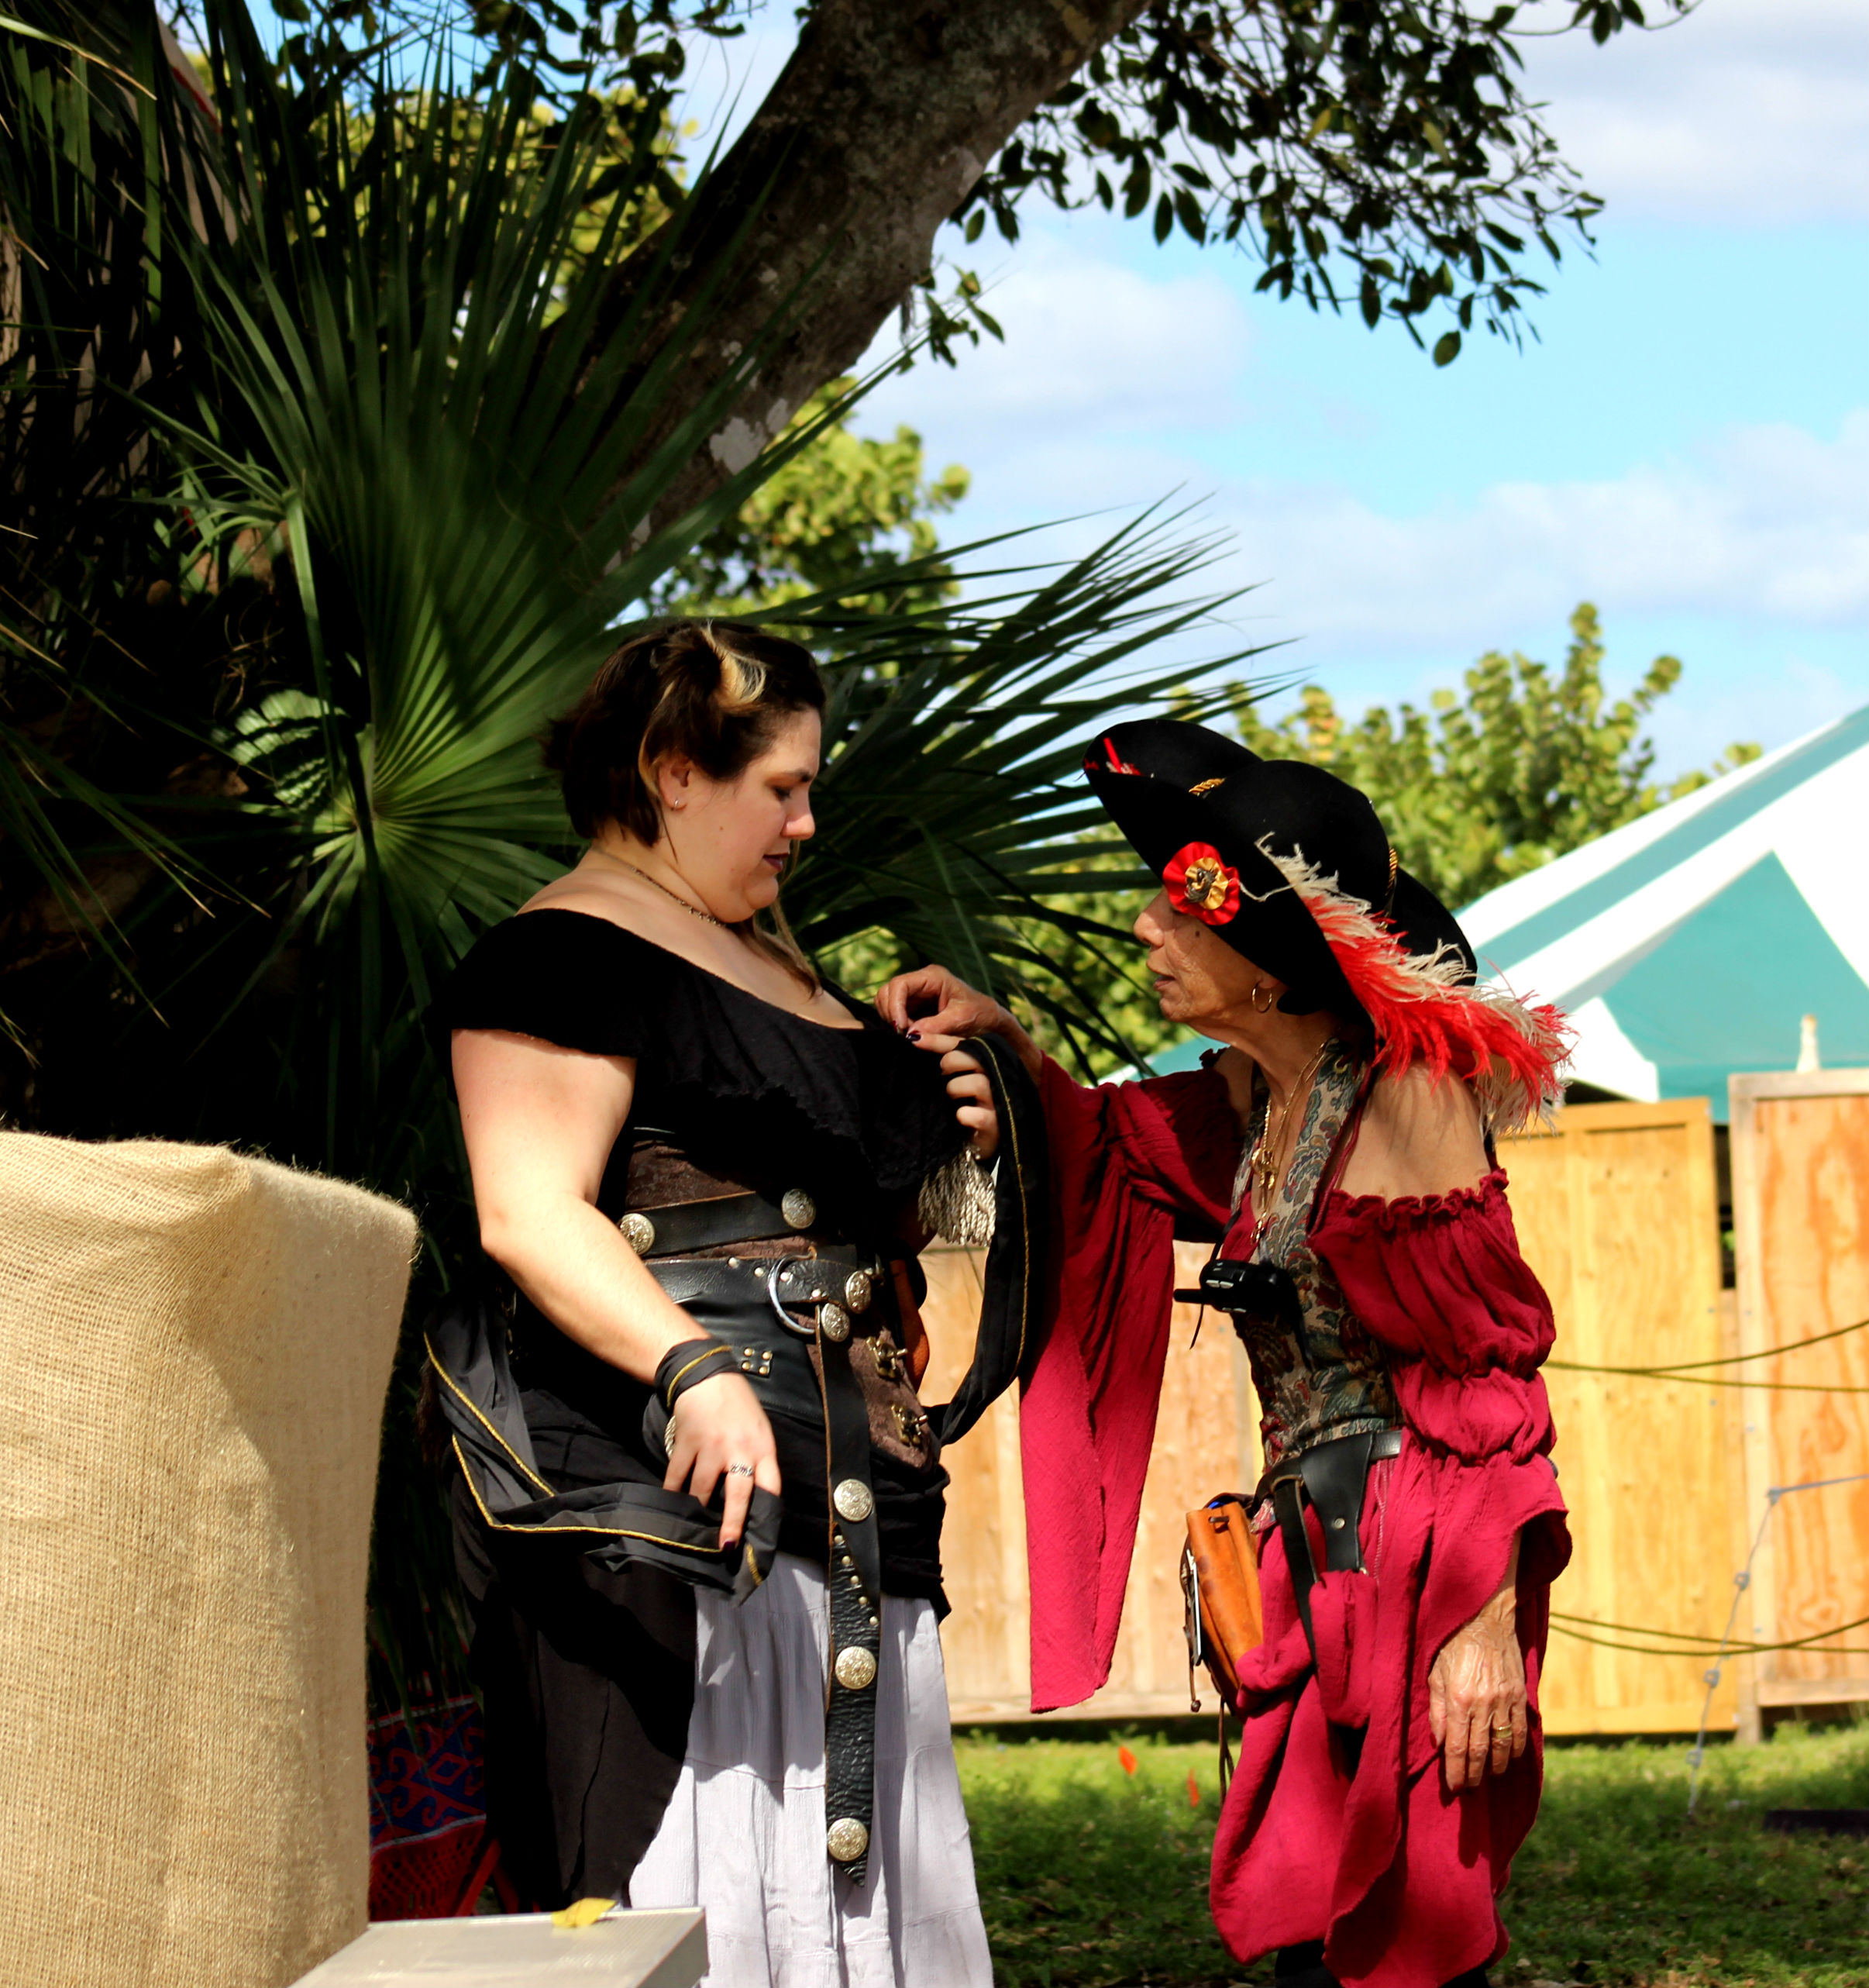 A Cool Walk Through Renaissance Festival